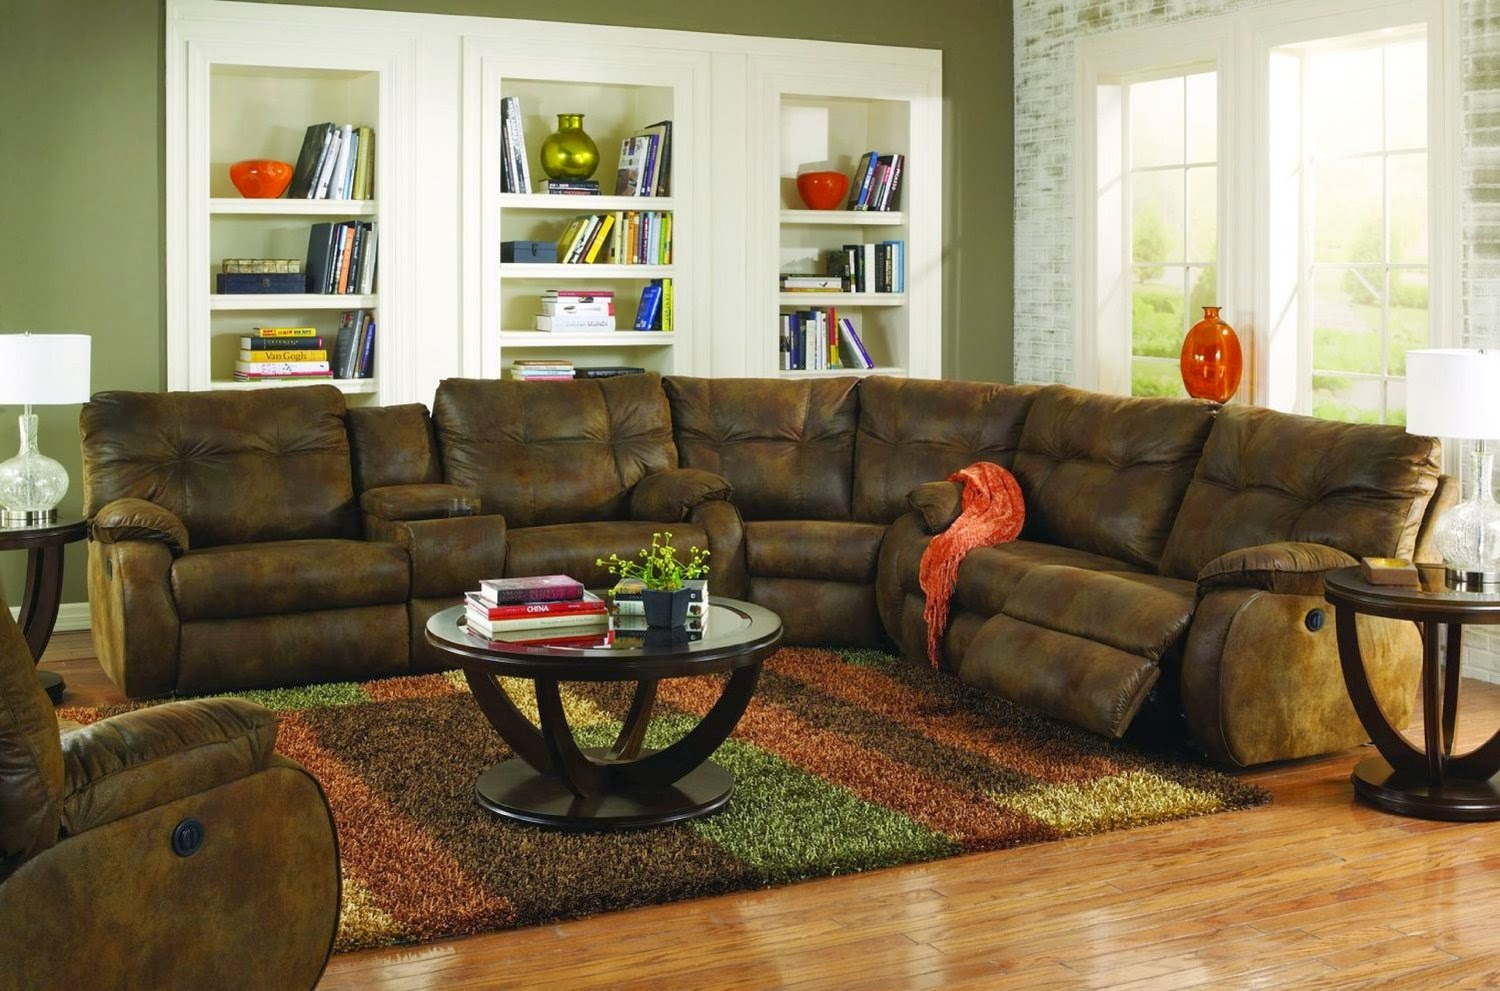 Southern motion sofa reviews southern motion living room for Best living room furniture reviews